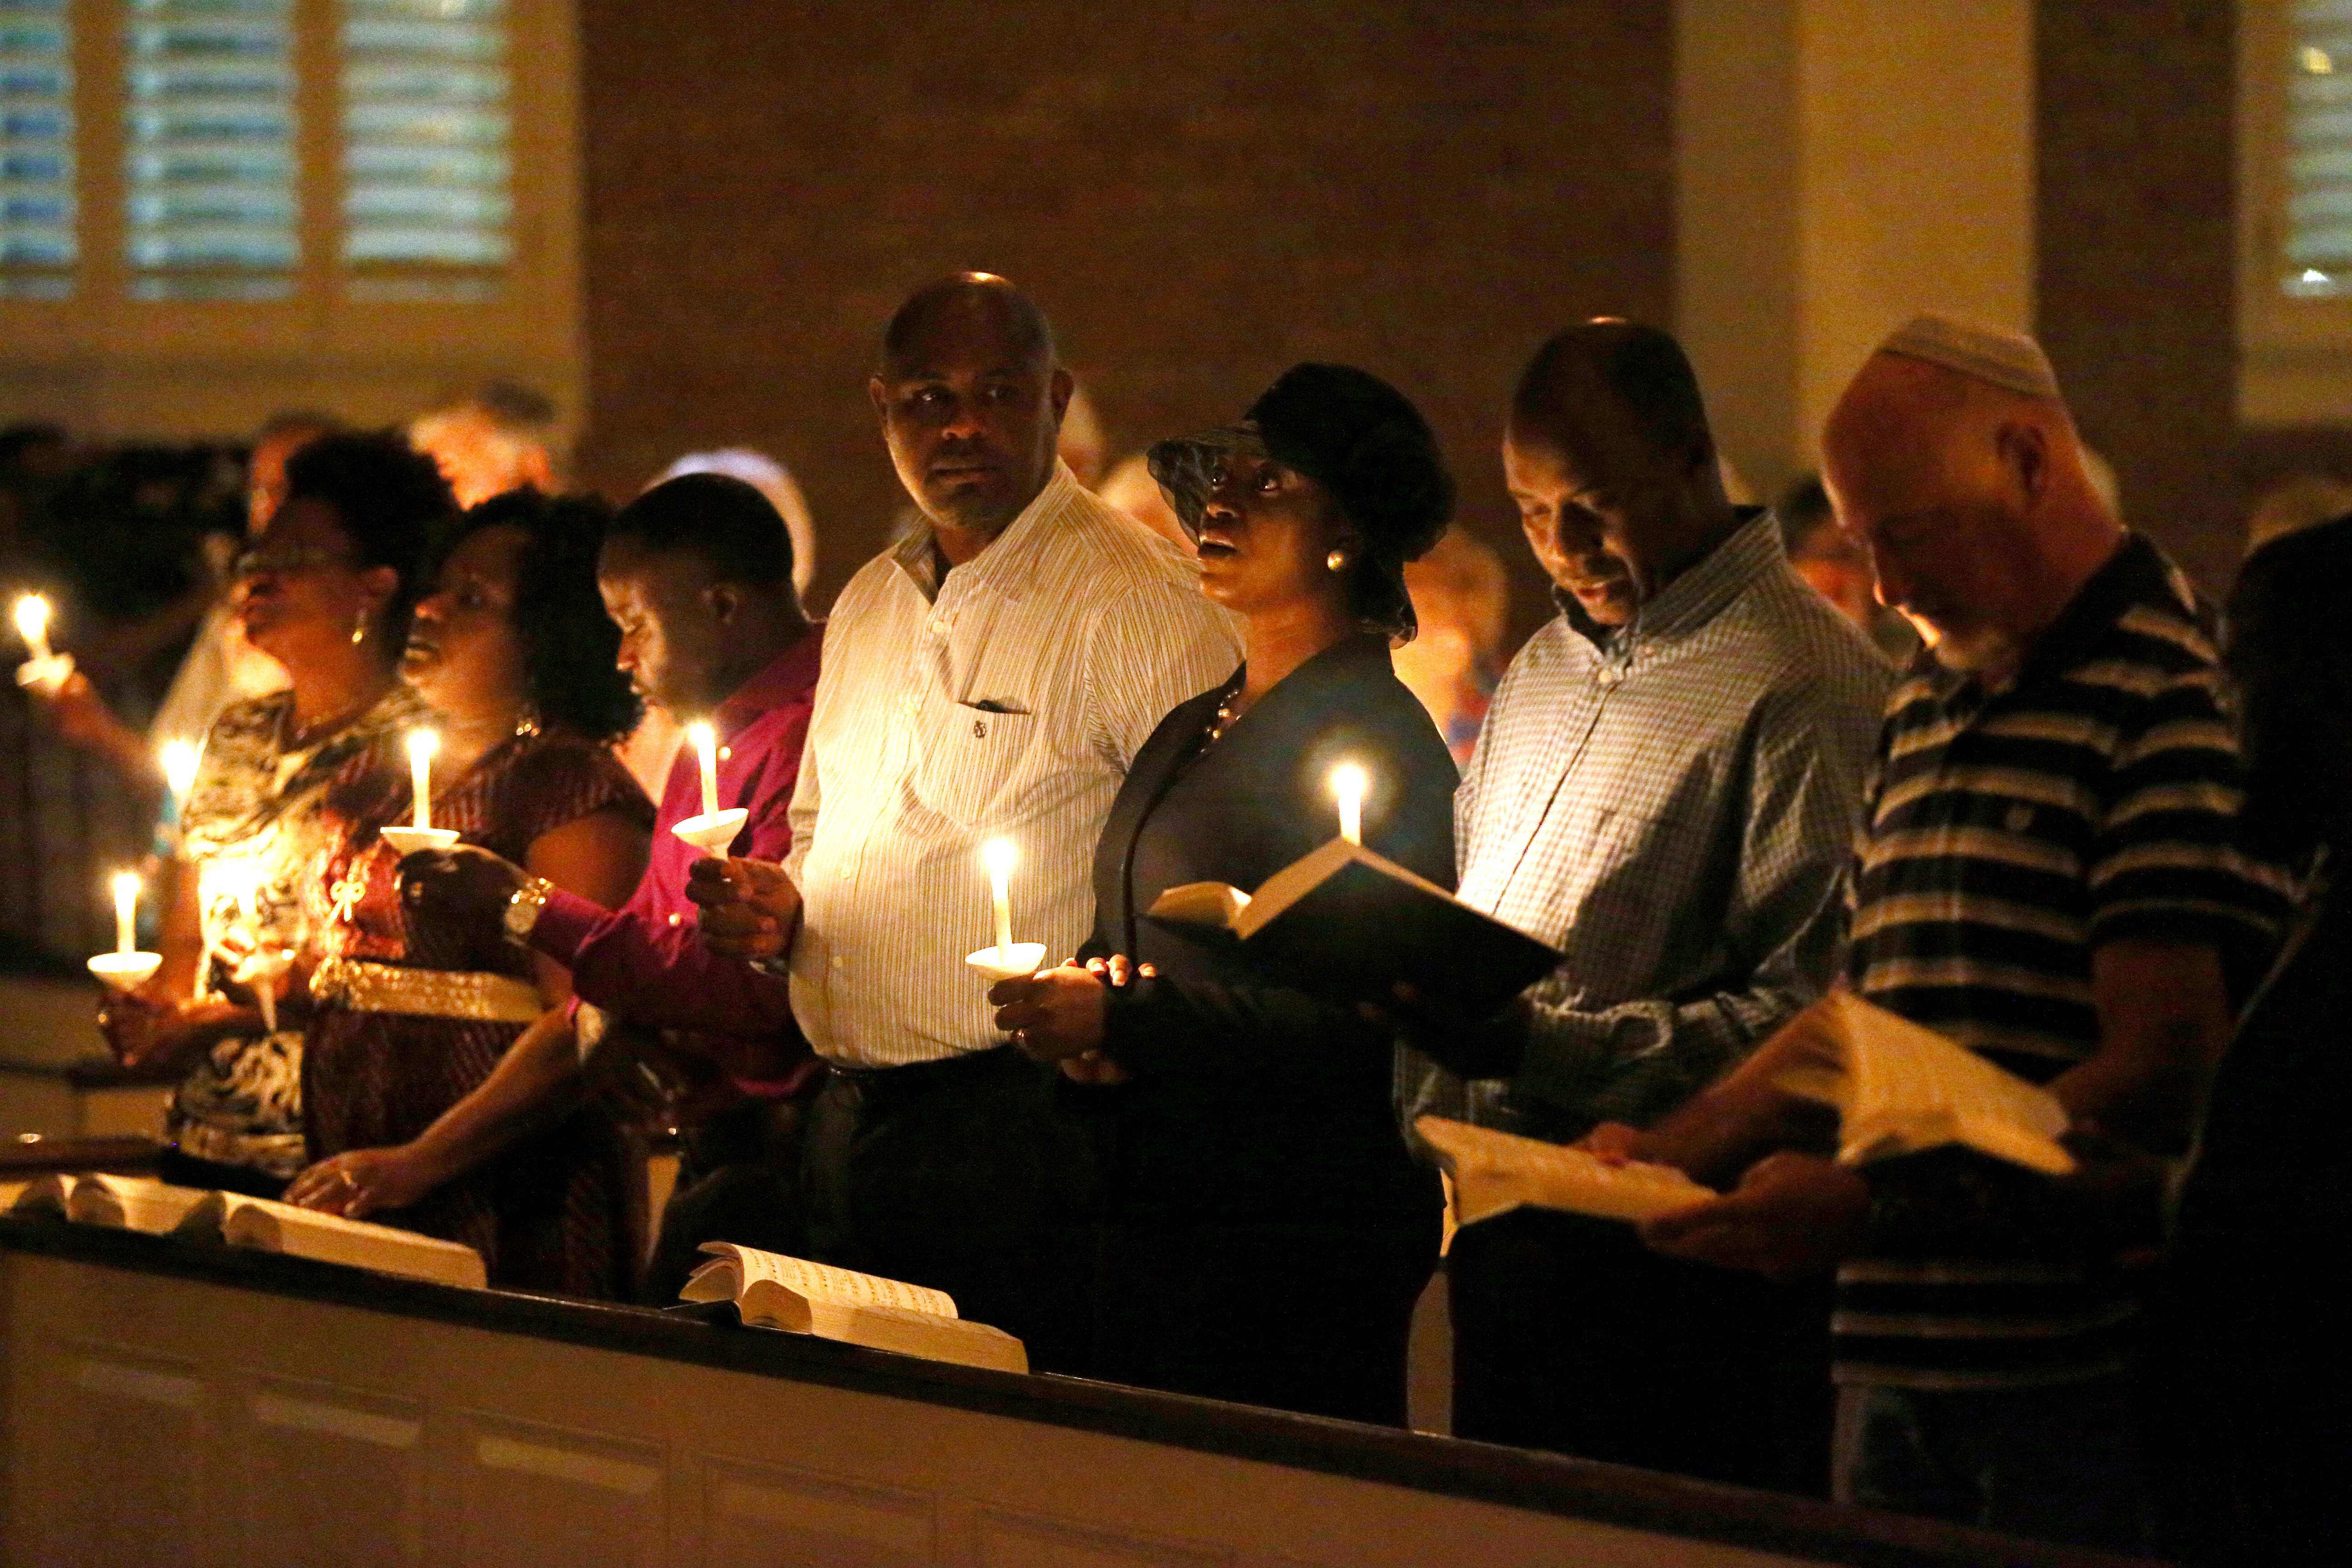 People hold candles during a prayer vigil and memorial at Wilshire Baptist Church for Thomas Eric Duncan after he passed away  from the Ebola virus on October 8, 2014 in Dallas, Texas.